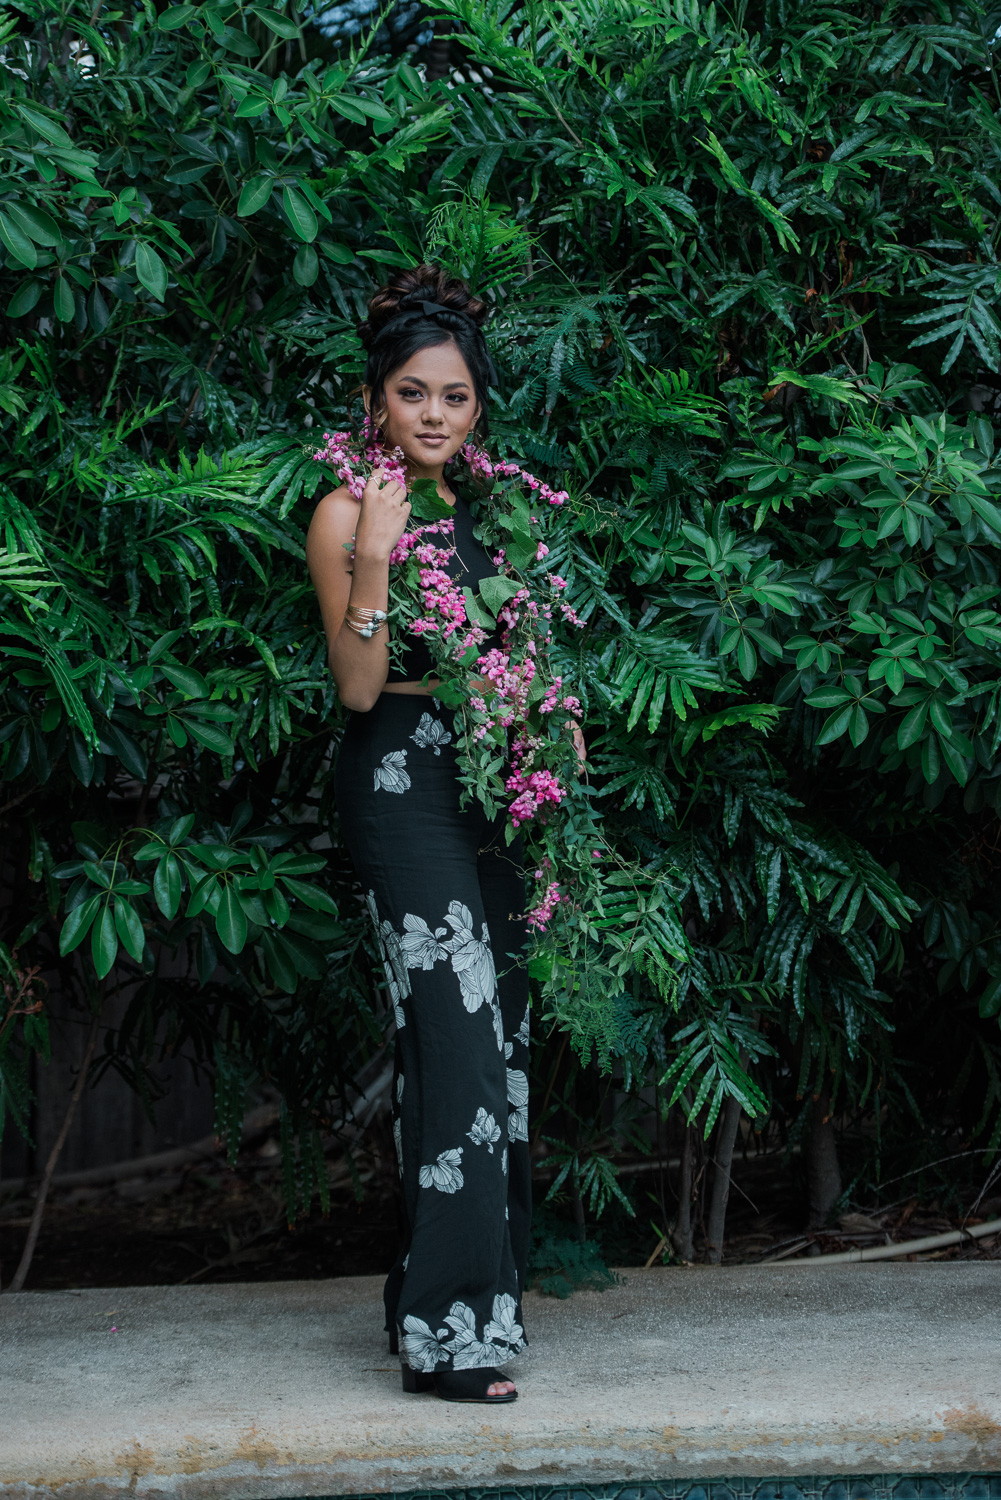 Miss Leeward Oahu Styled Shoot with greenery